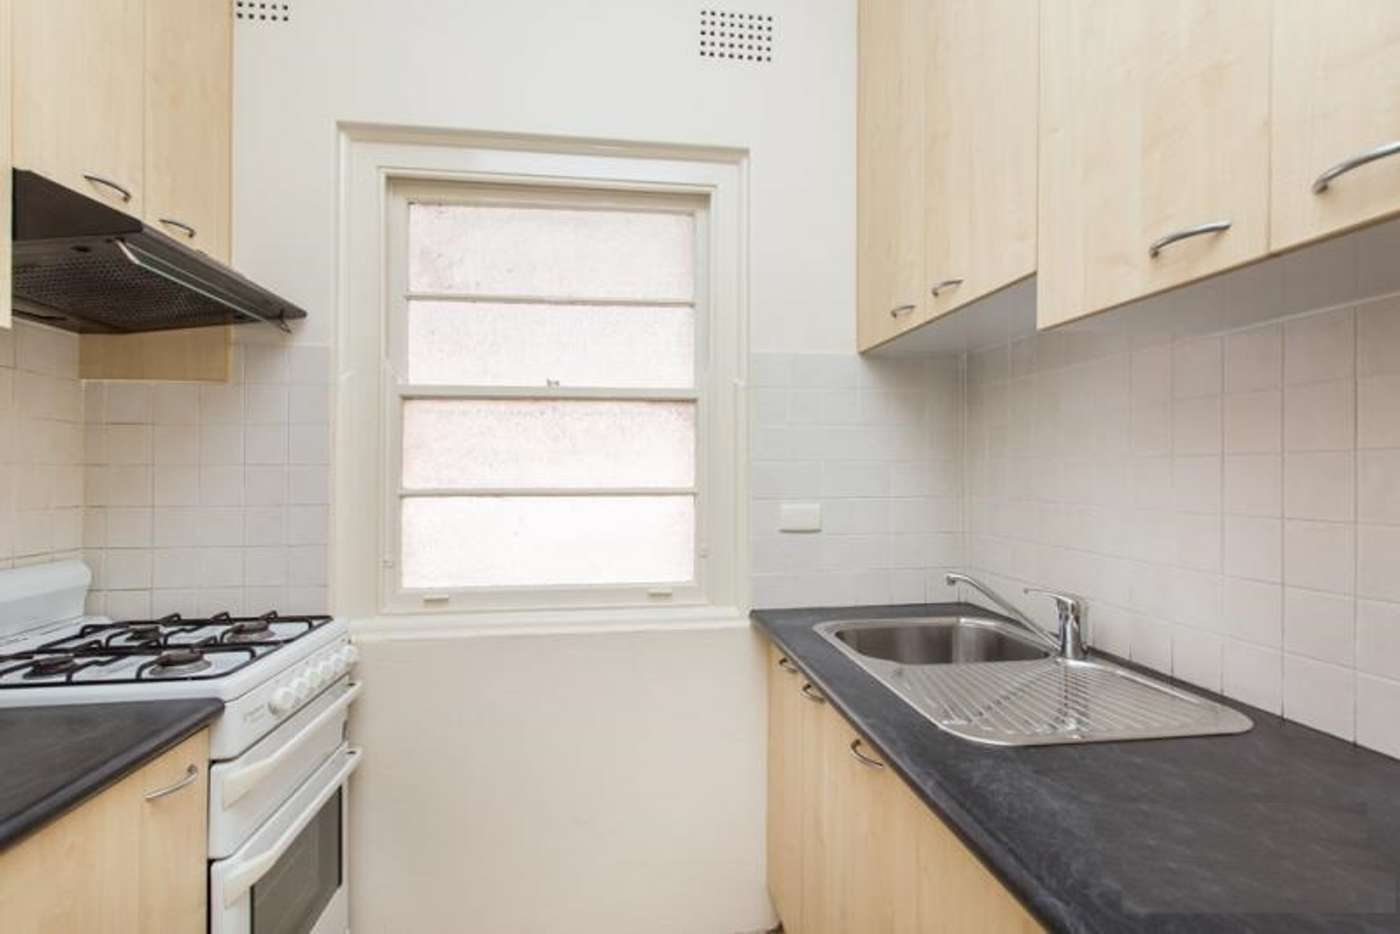 Main view of Homely apartment listing, 7/2 Blue St, North Sydney NSW 2060